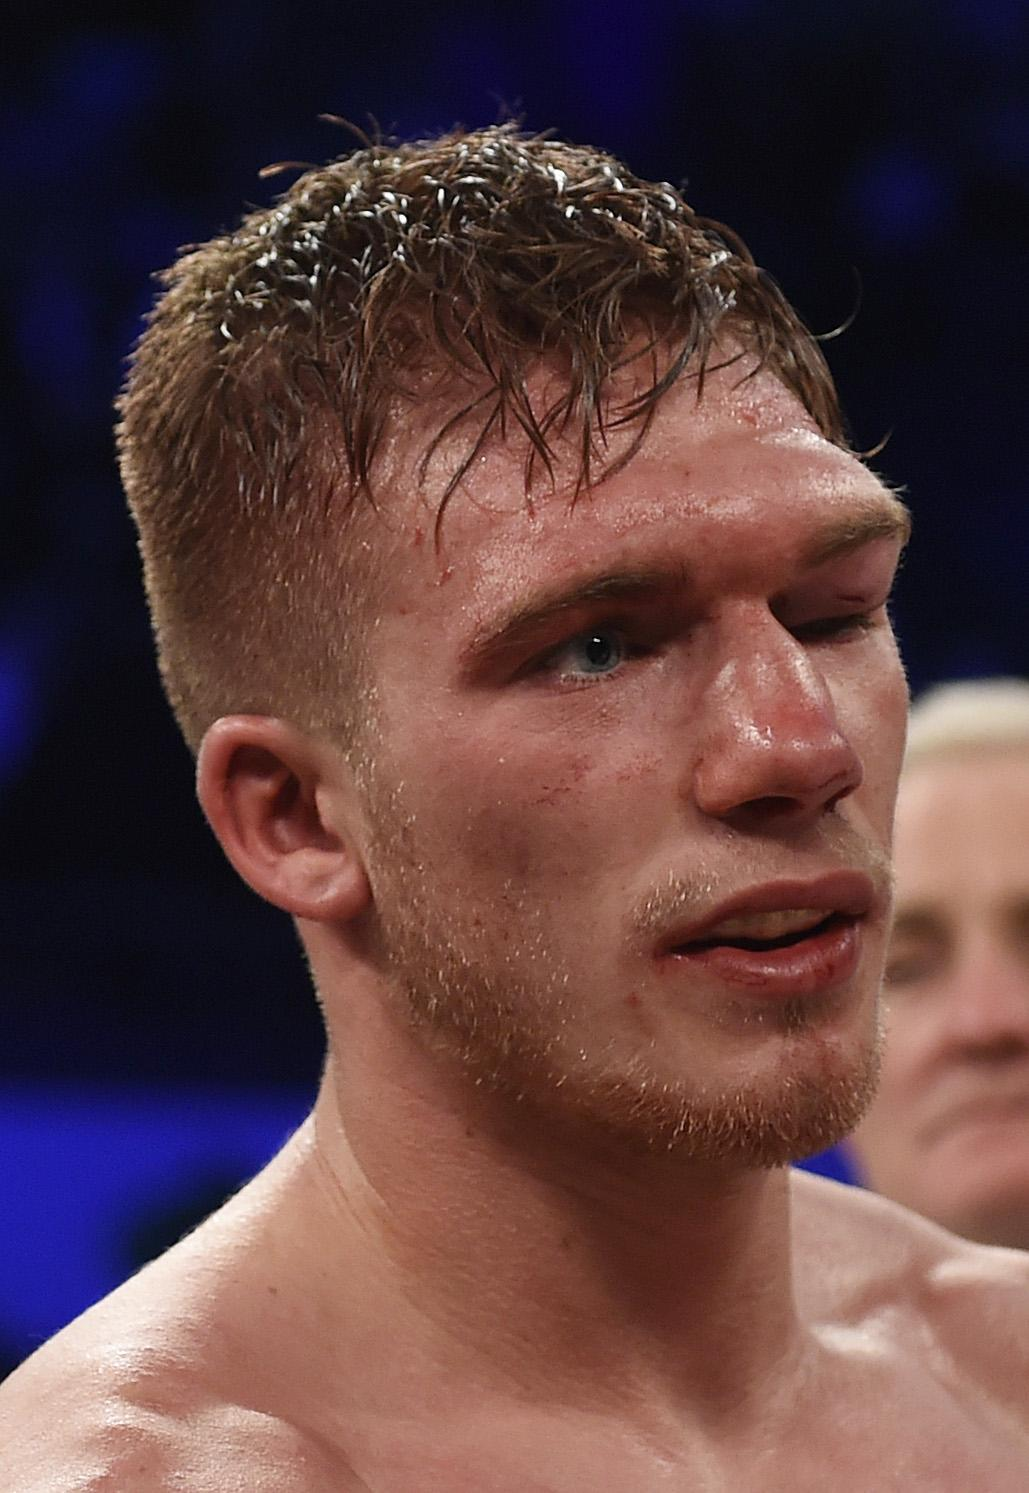 Nick Blackwell was put in an induced coma after suffering a bleed on the brain after a fight with Eubank Jr in 2016